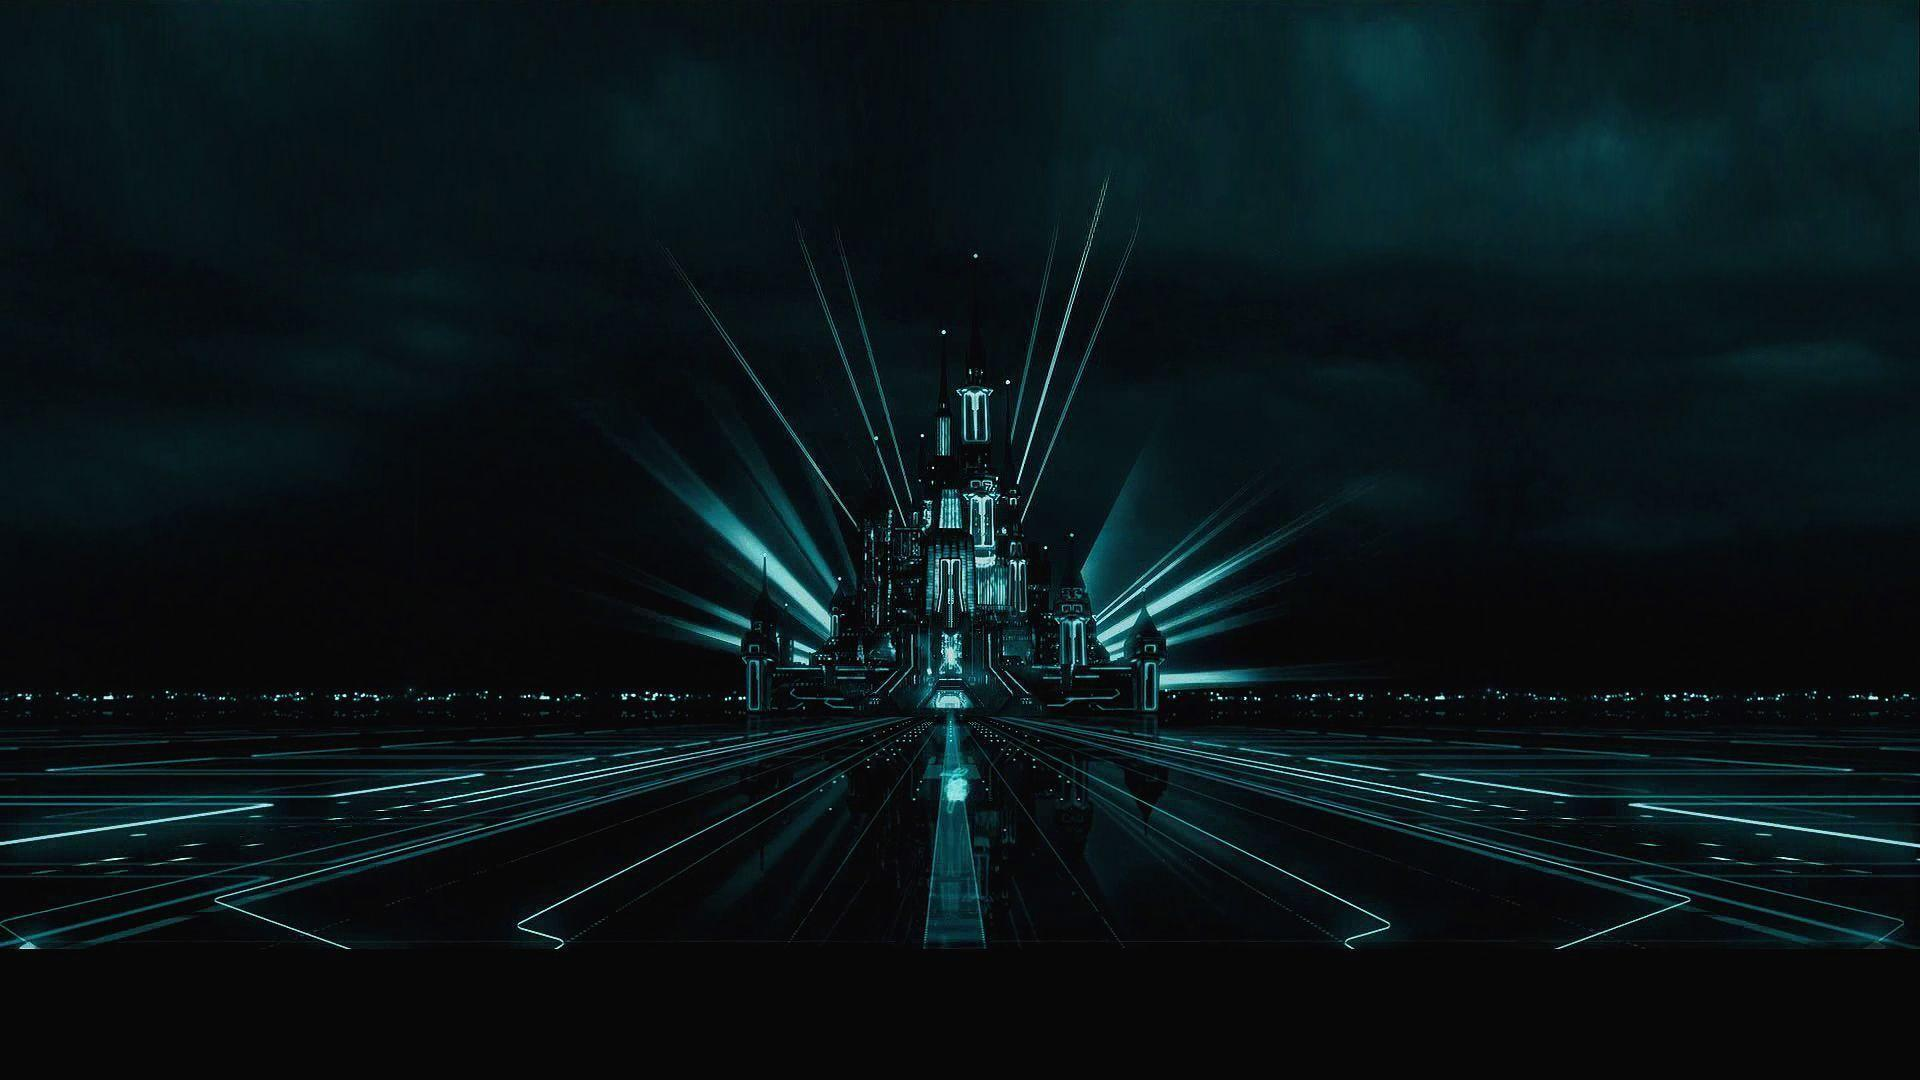 tron wallpapers 1080p - wallpaper cave